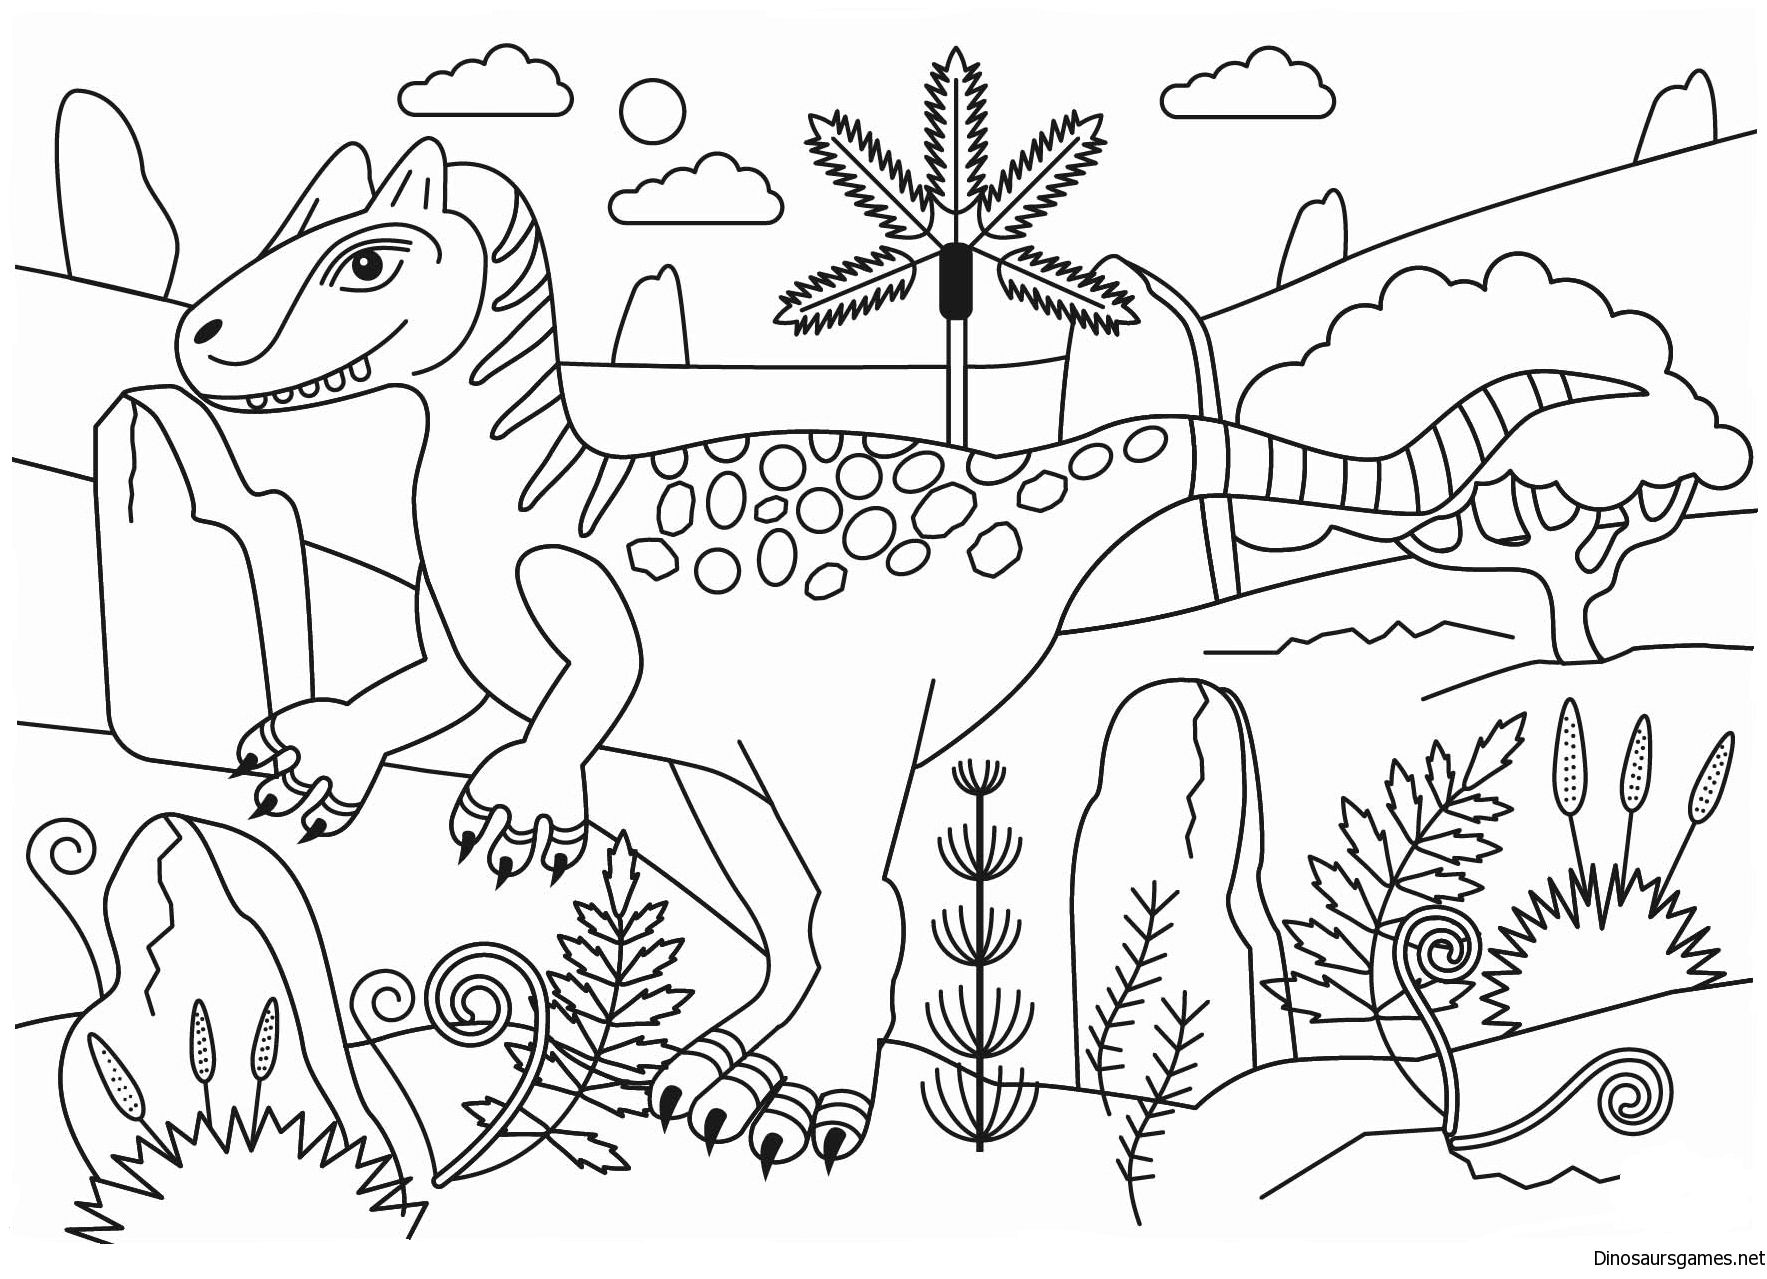 Jurassic World Coloring Pages Allosaurus Jurassic Dinosaur Coloring Page Dinosaur Coloring Pages Dinosaur Coloring Disney Coloring Pages